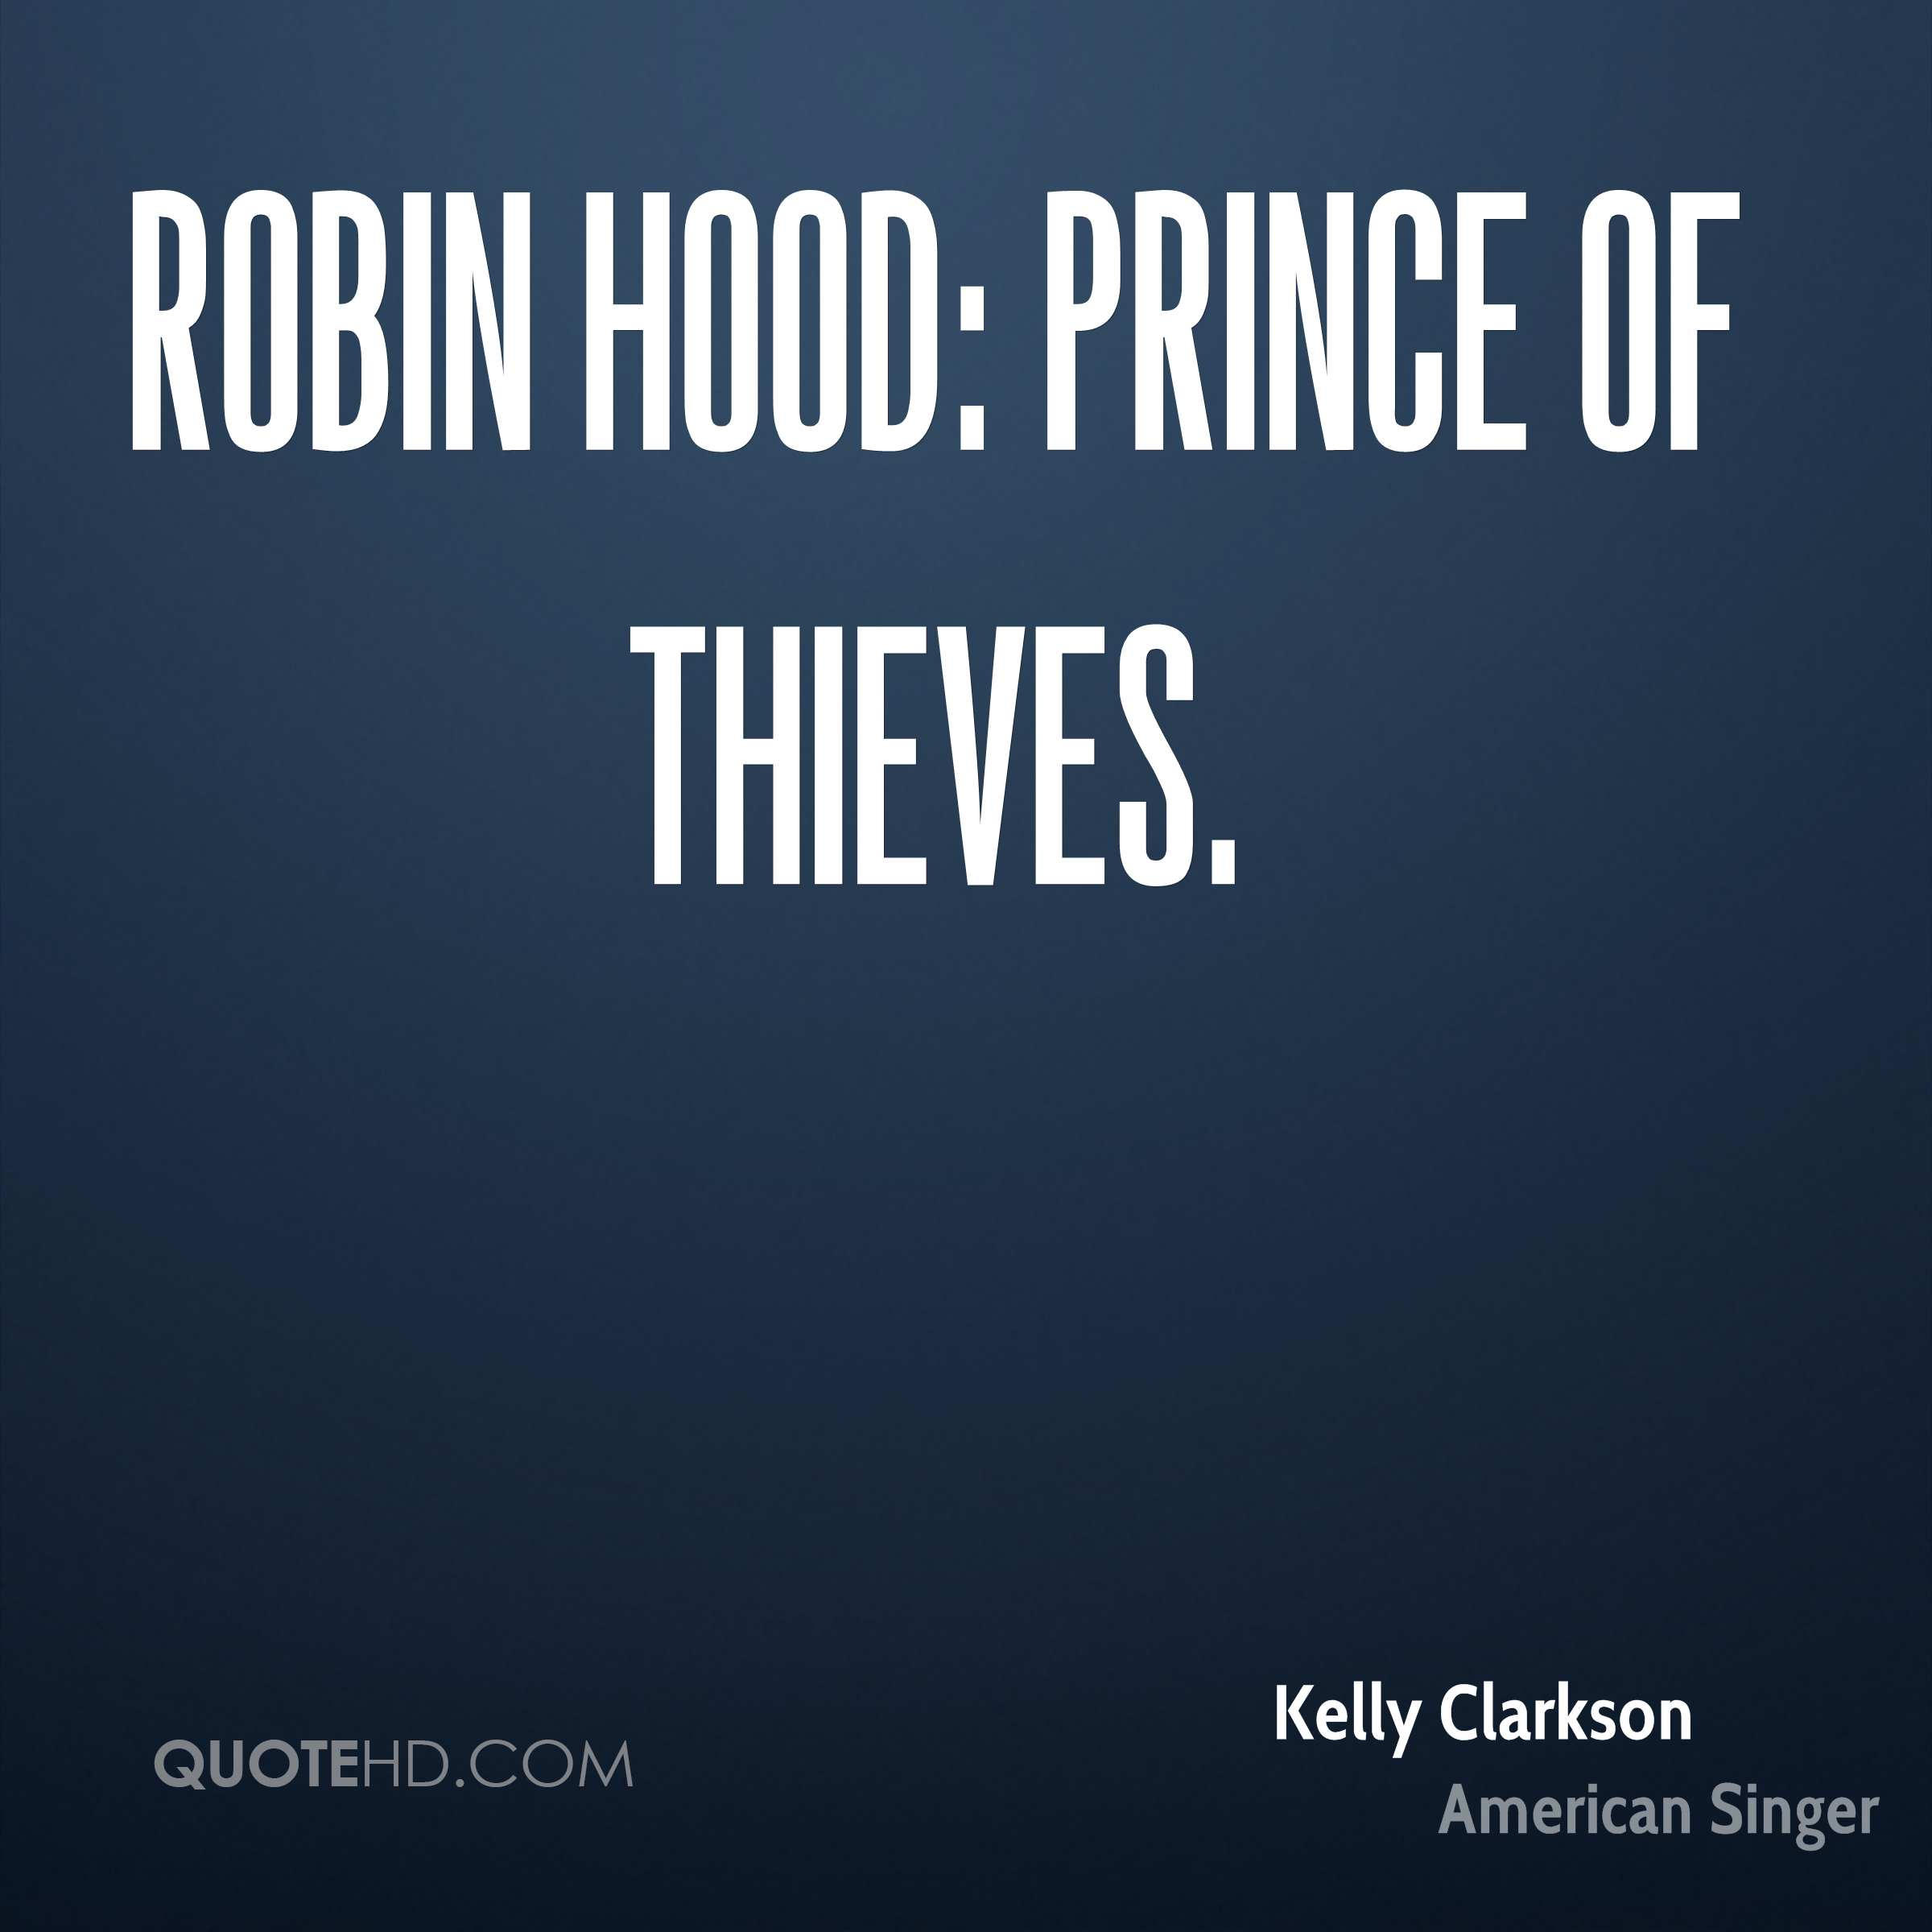 Life In The Hood Quotes Images: Kelly Clarkson Quotes